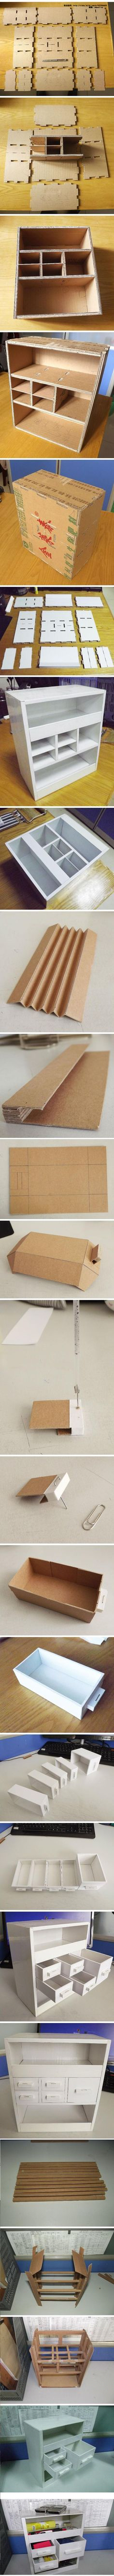 Ambitious...to make a mini cabinet storage out of cardboard!